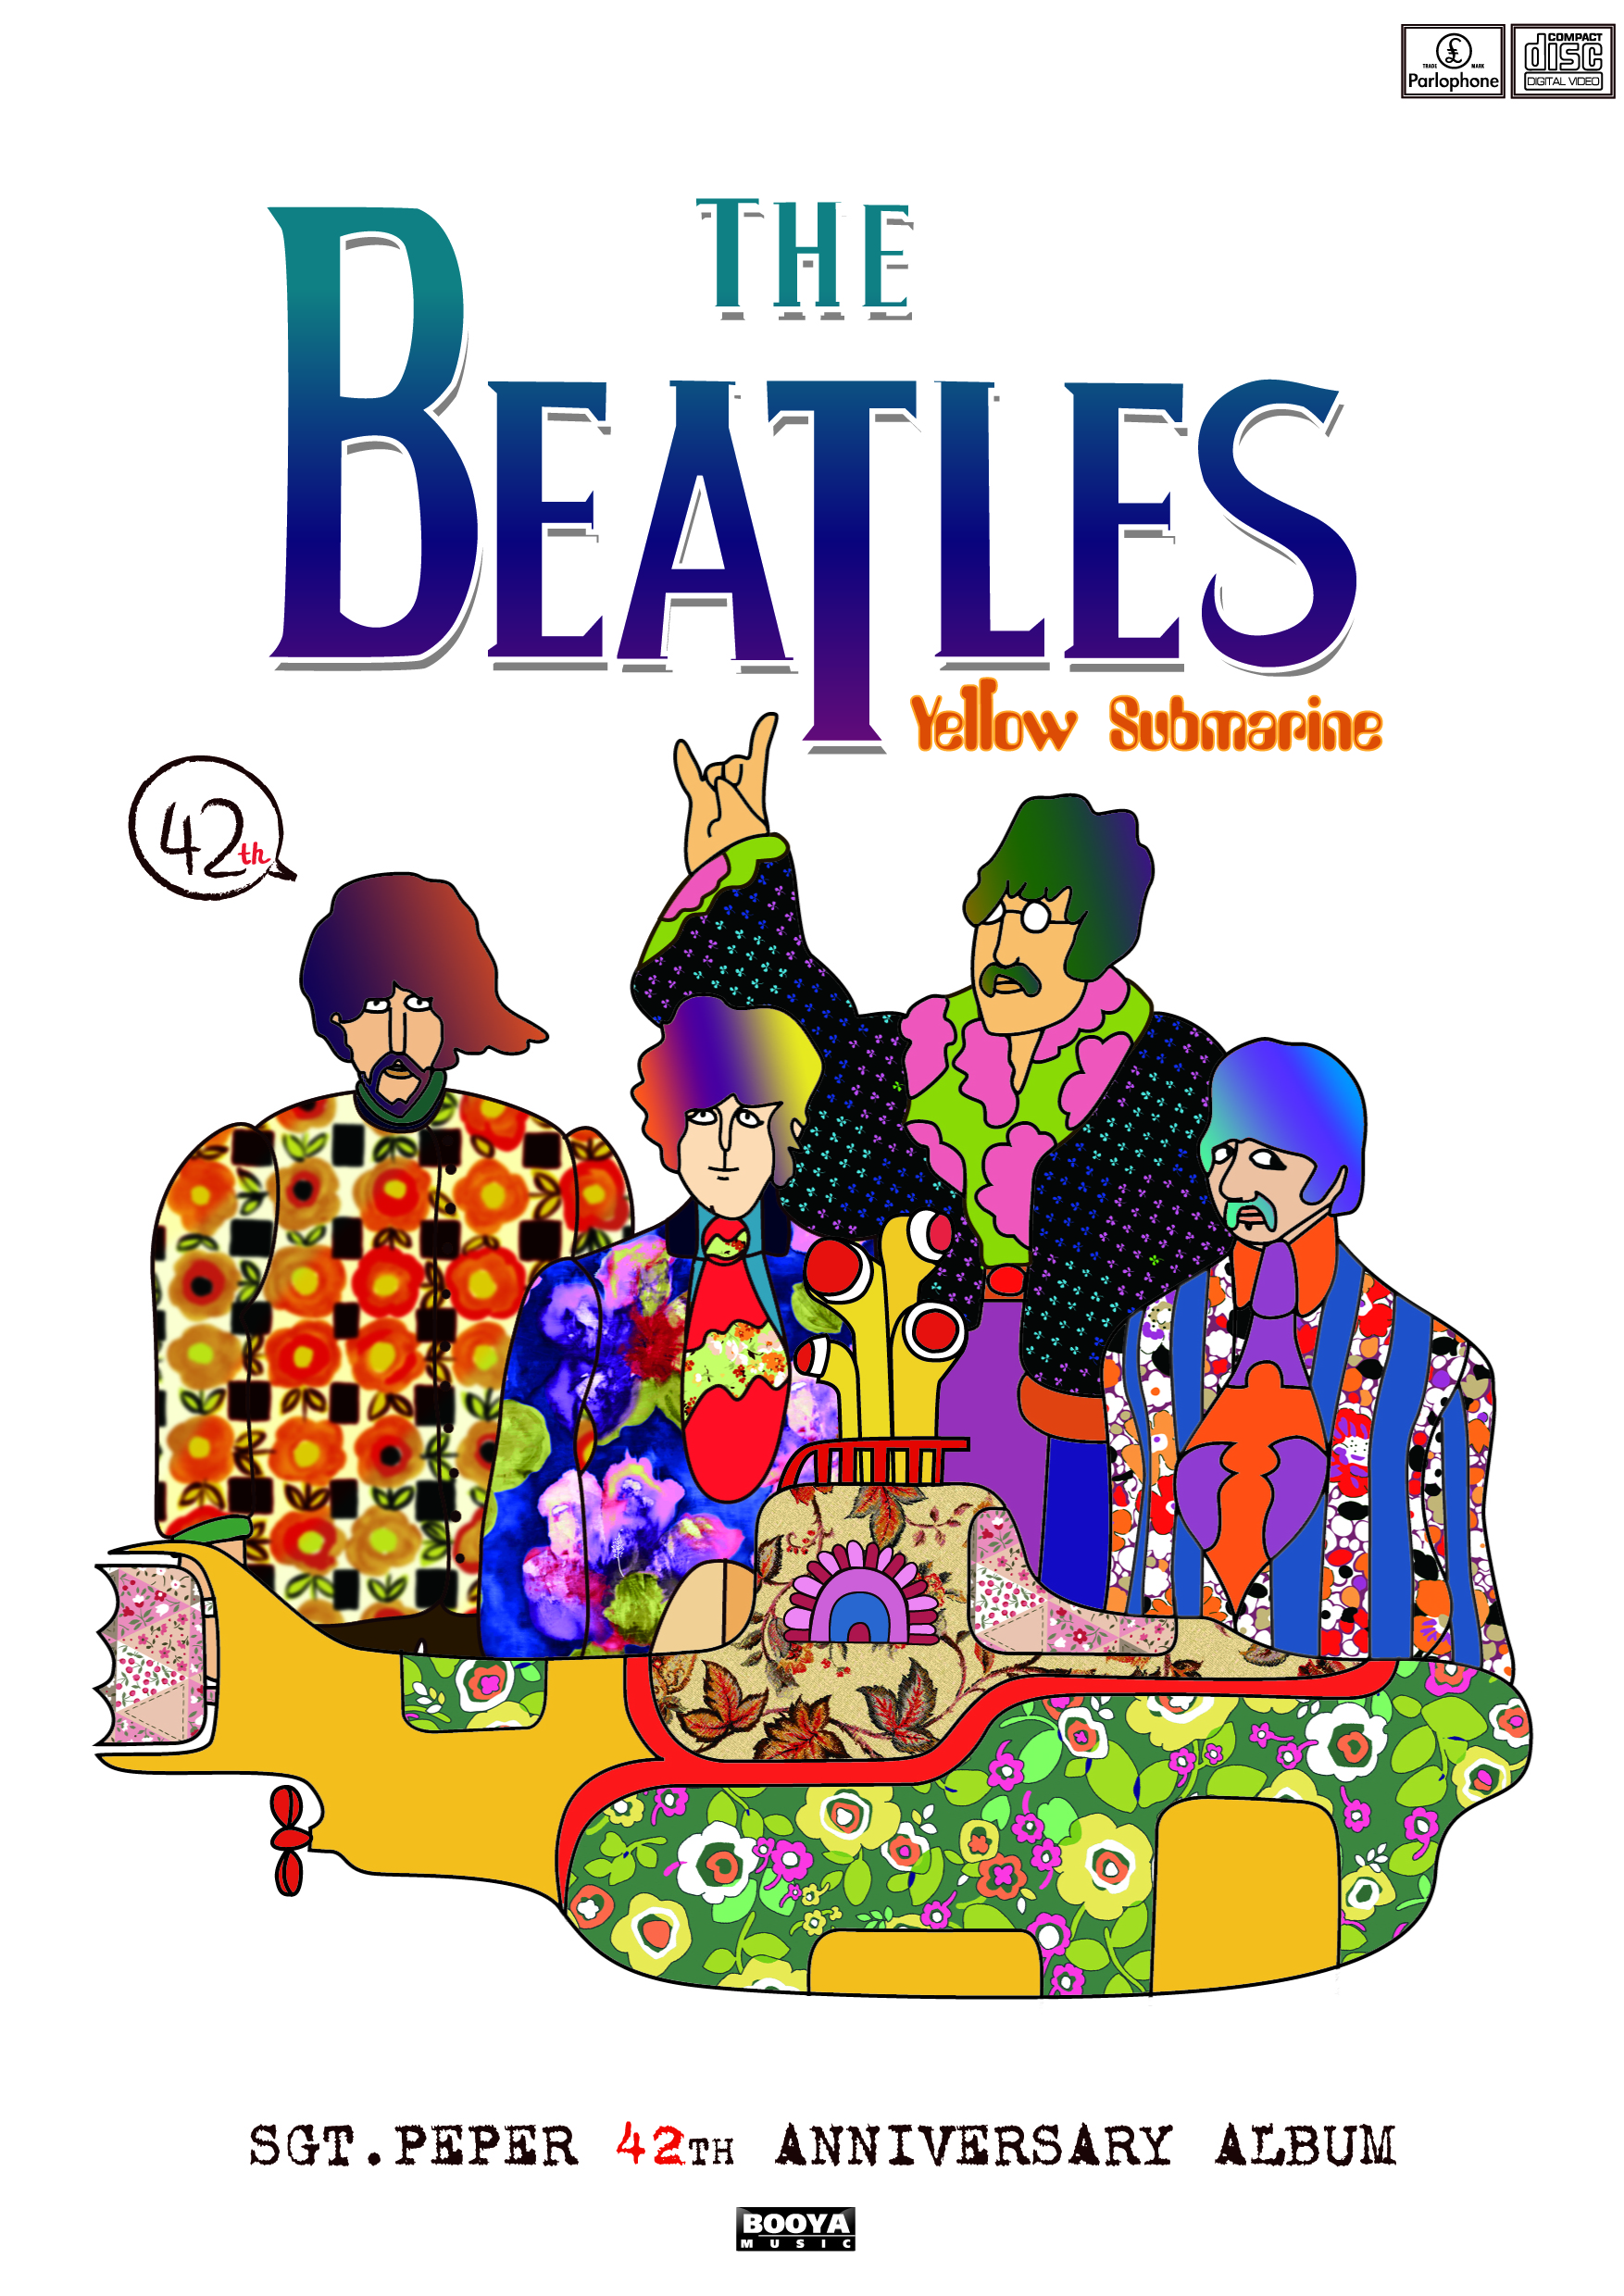 Poster for Beatles - yellow submarine by Yu Hsia at ...